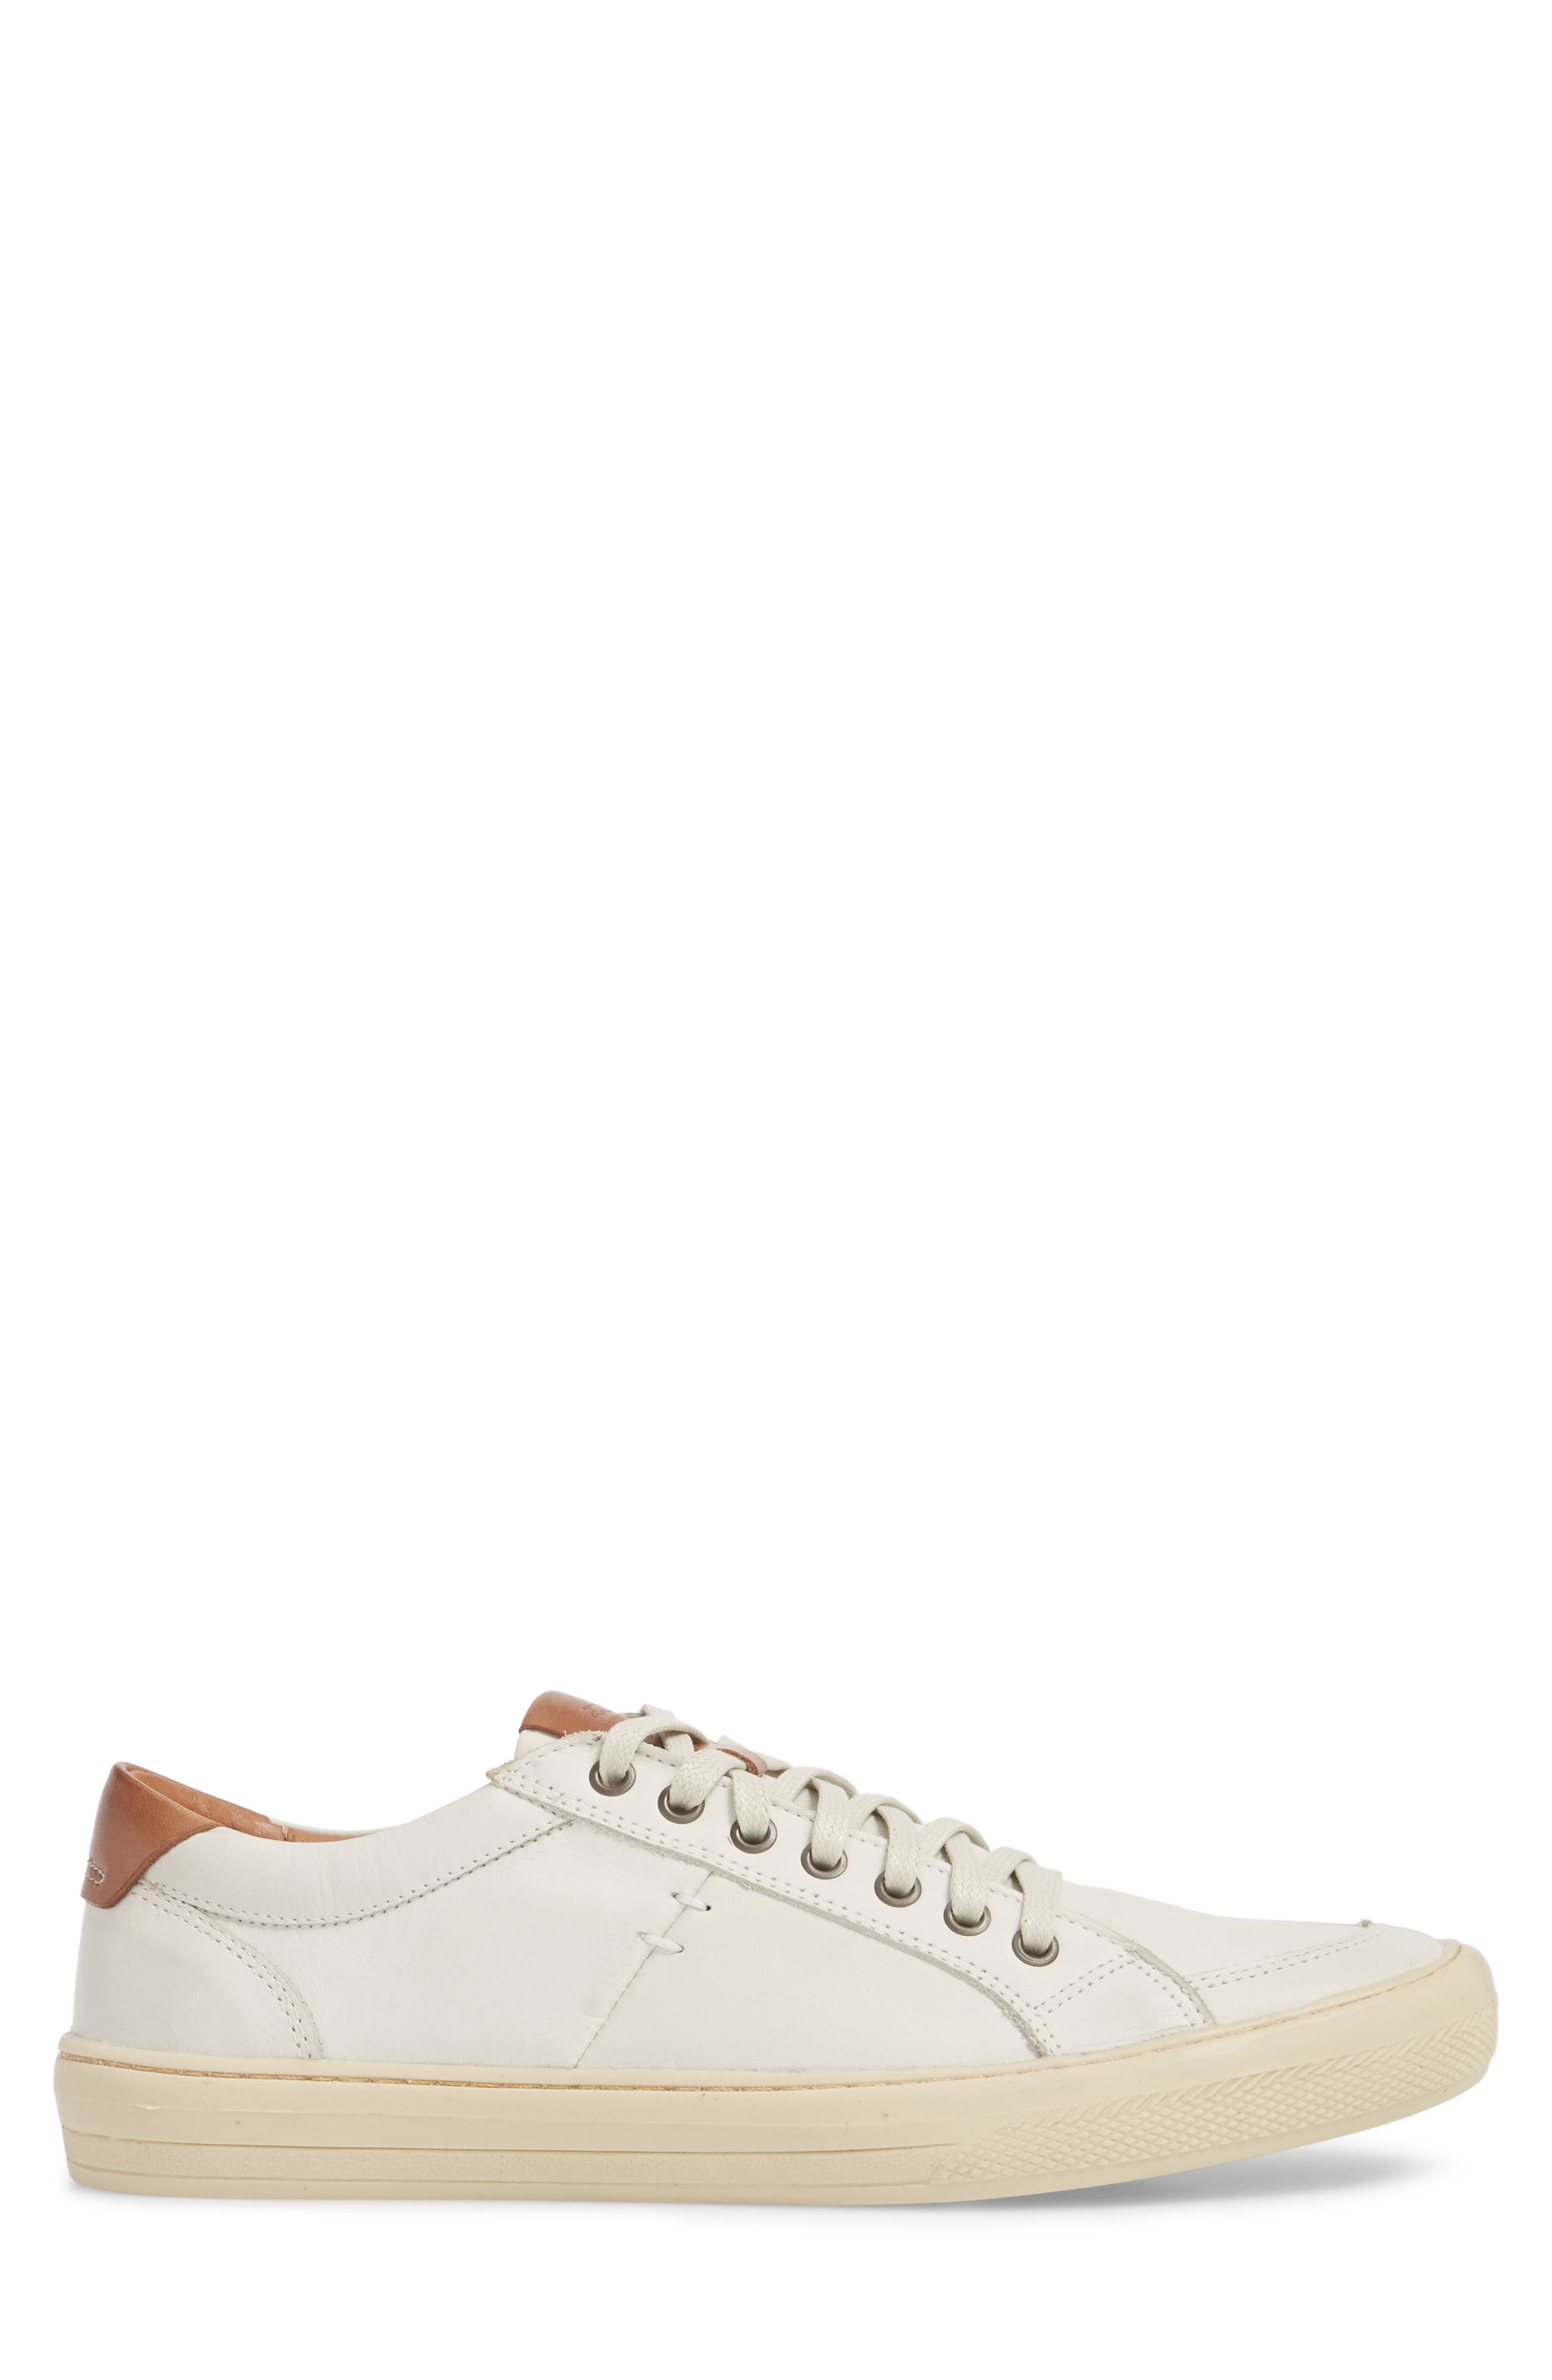 Bilac Low Top Sneaker,                             Alternate thumbnail 3, color,                             100